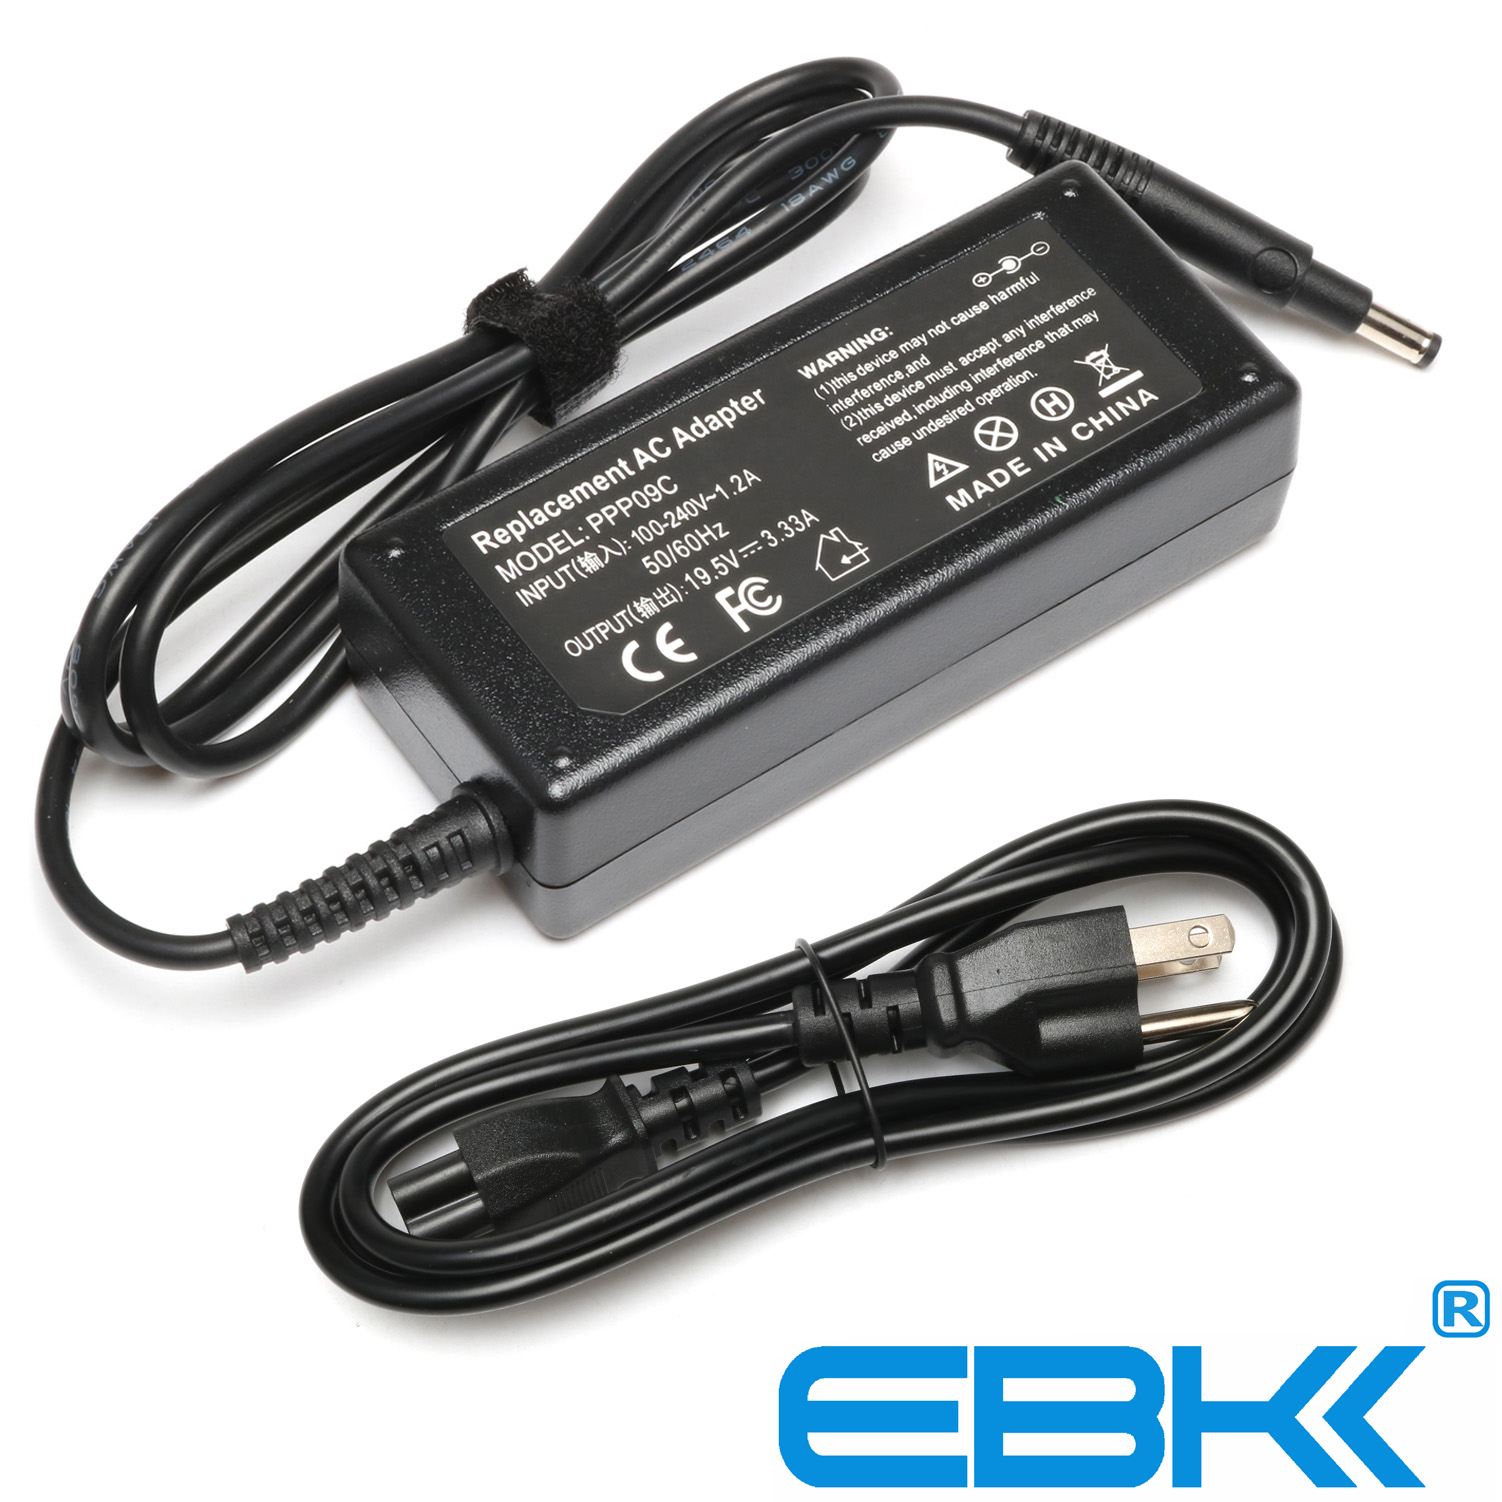 EBK 19.5V 3.33A 65W PPP09C AC Adapter Battery Charger for HP Pavilion Touchsmart 14-b109wm Sleekbook Fit 693715-001, 677770-001,677770-002,677770-003, 613149-003